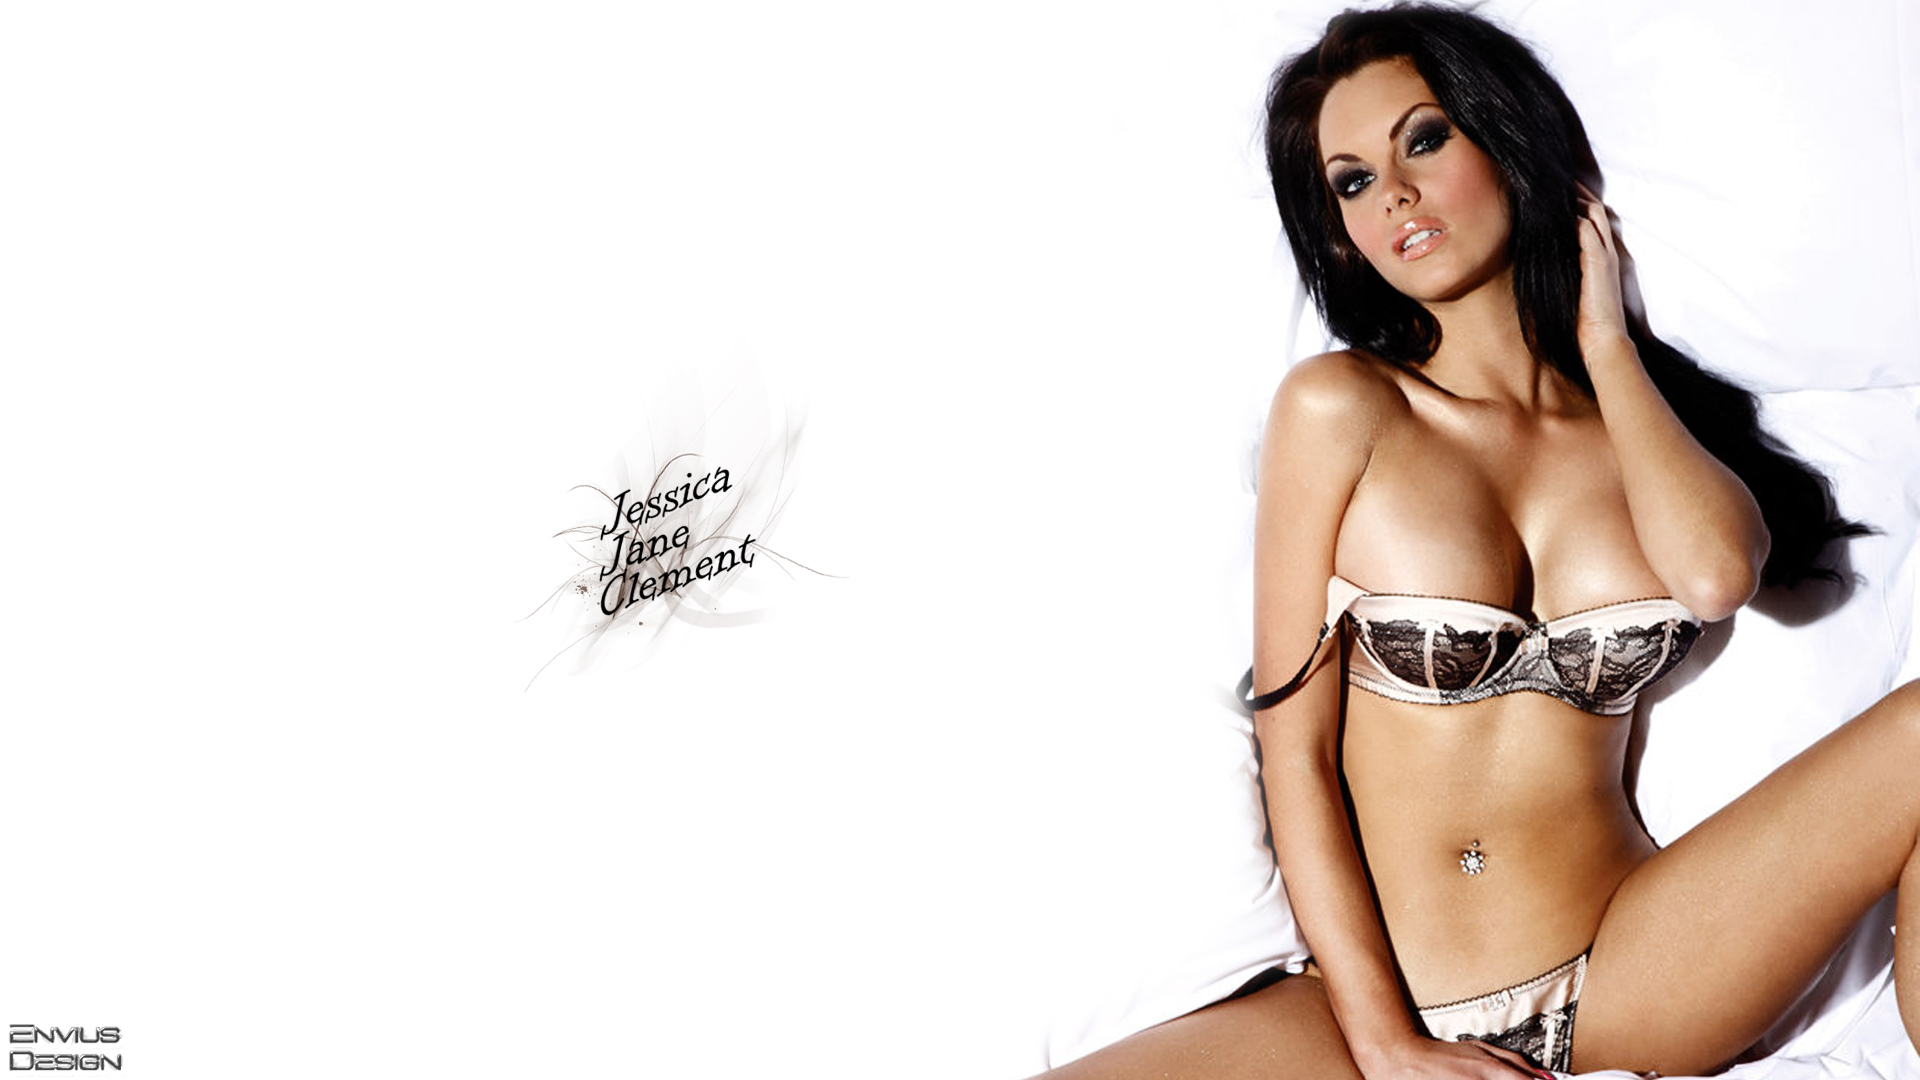 Jessica Jane Clement by Envius88